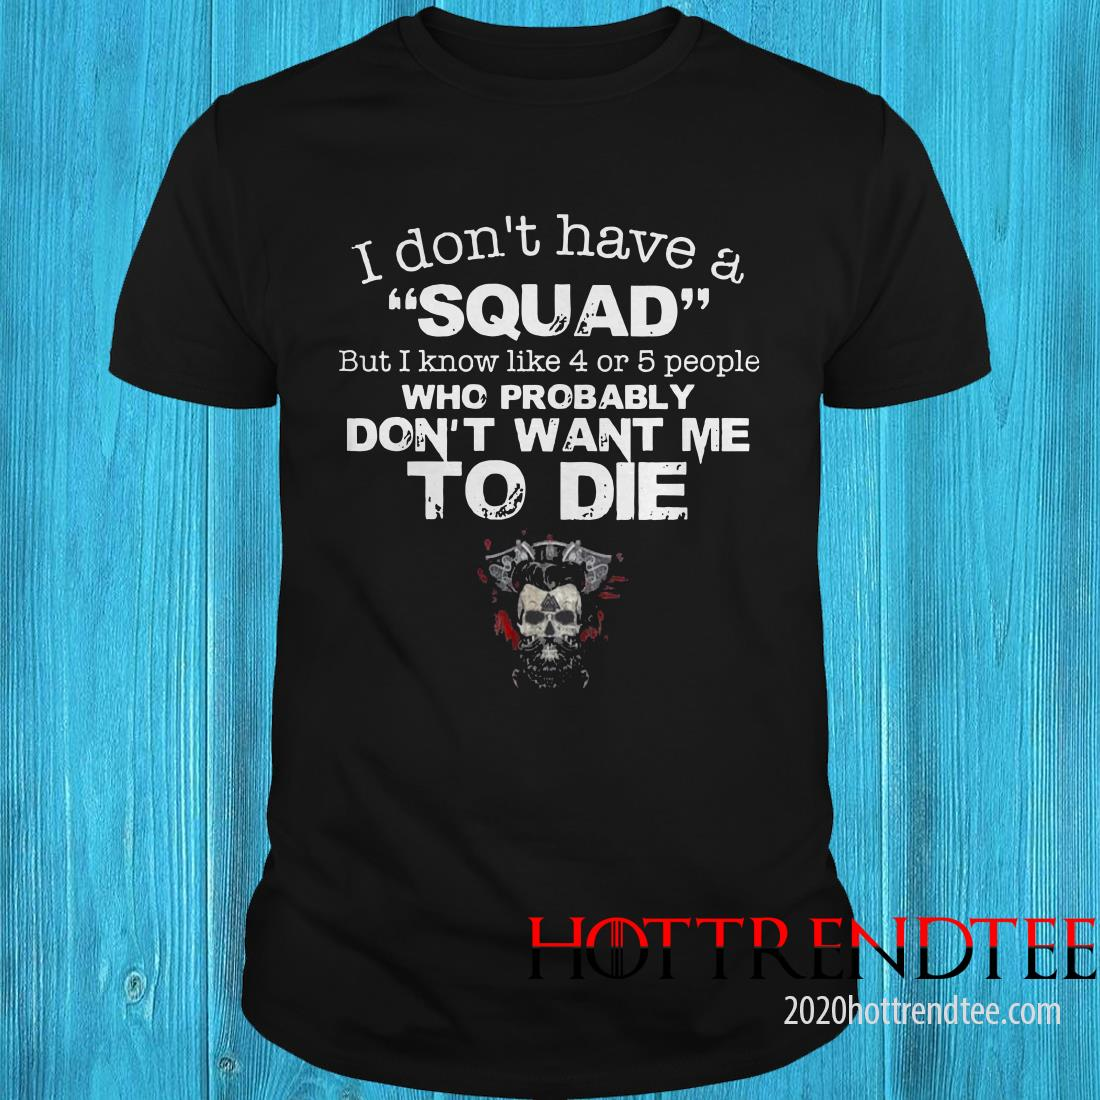 I Don't Have A Squad But I Know Like 4 Or 5 People Who Probably Don't Want Me To Die Shirt